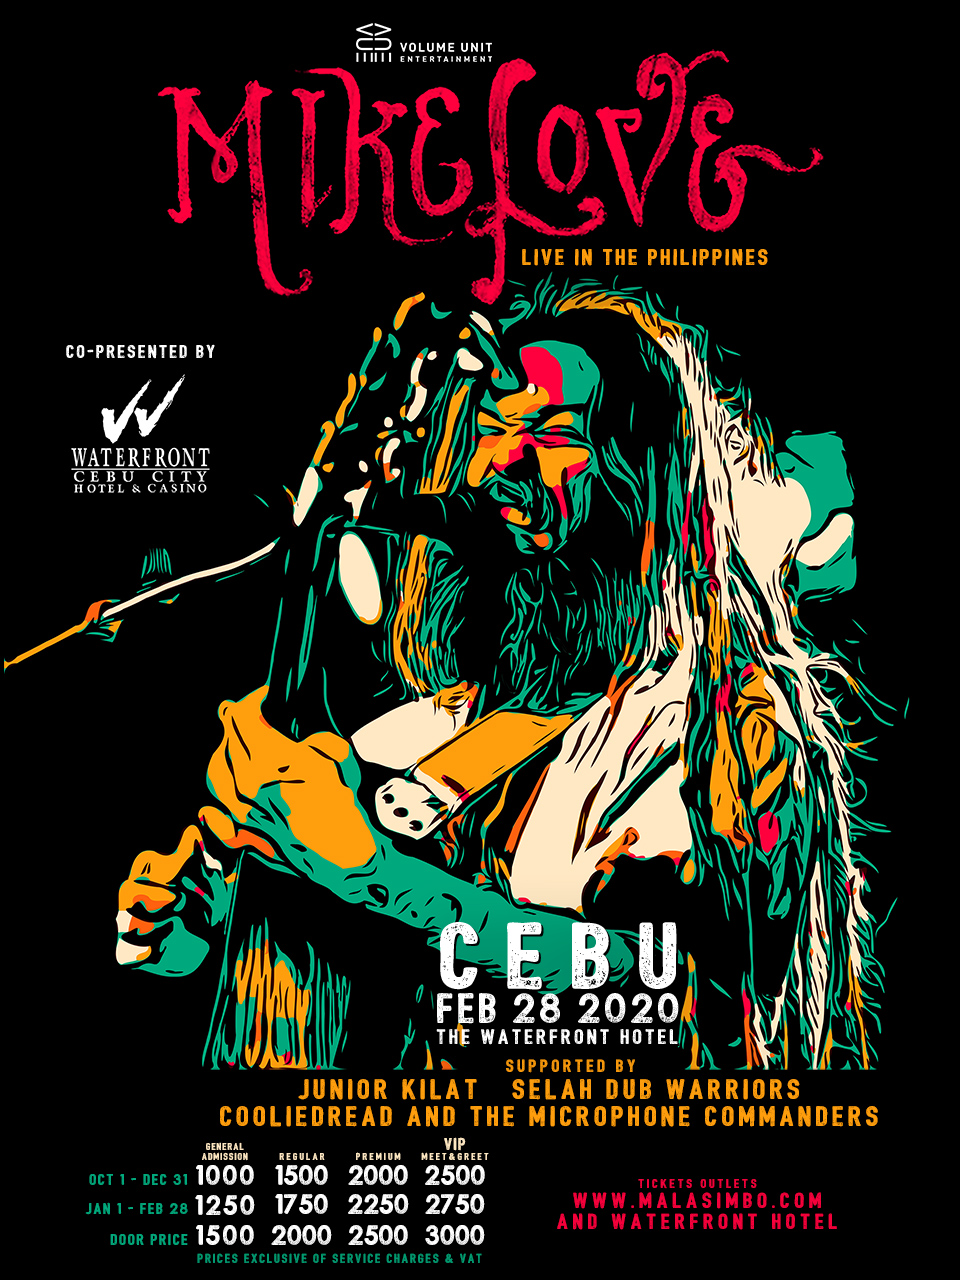 Mike Love Live in Cebu - Feb 28 2020 at the Waterfront Hotel